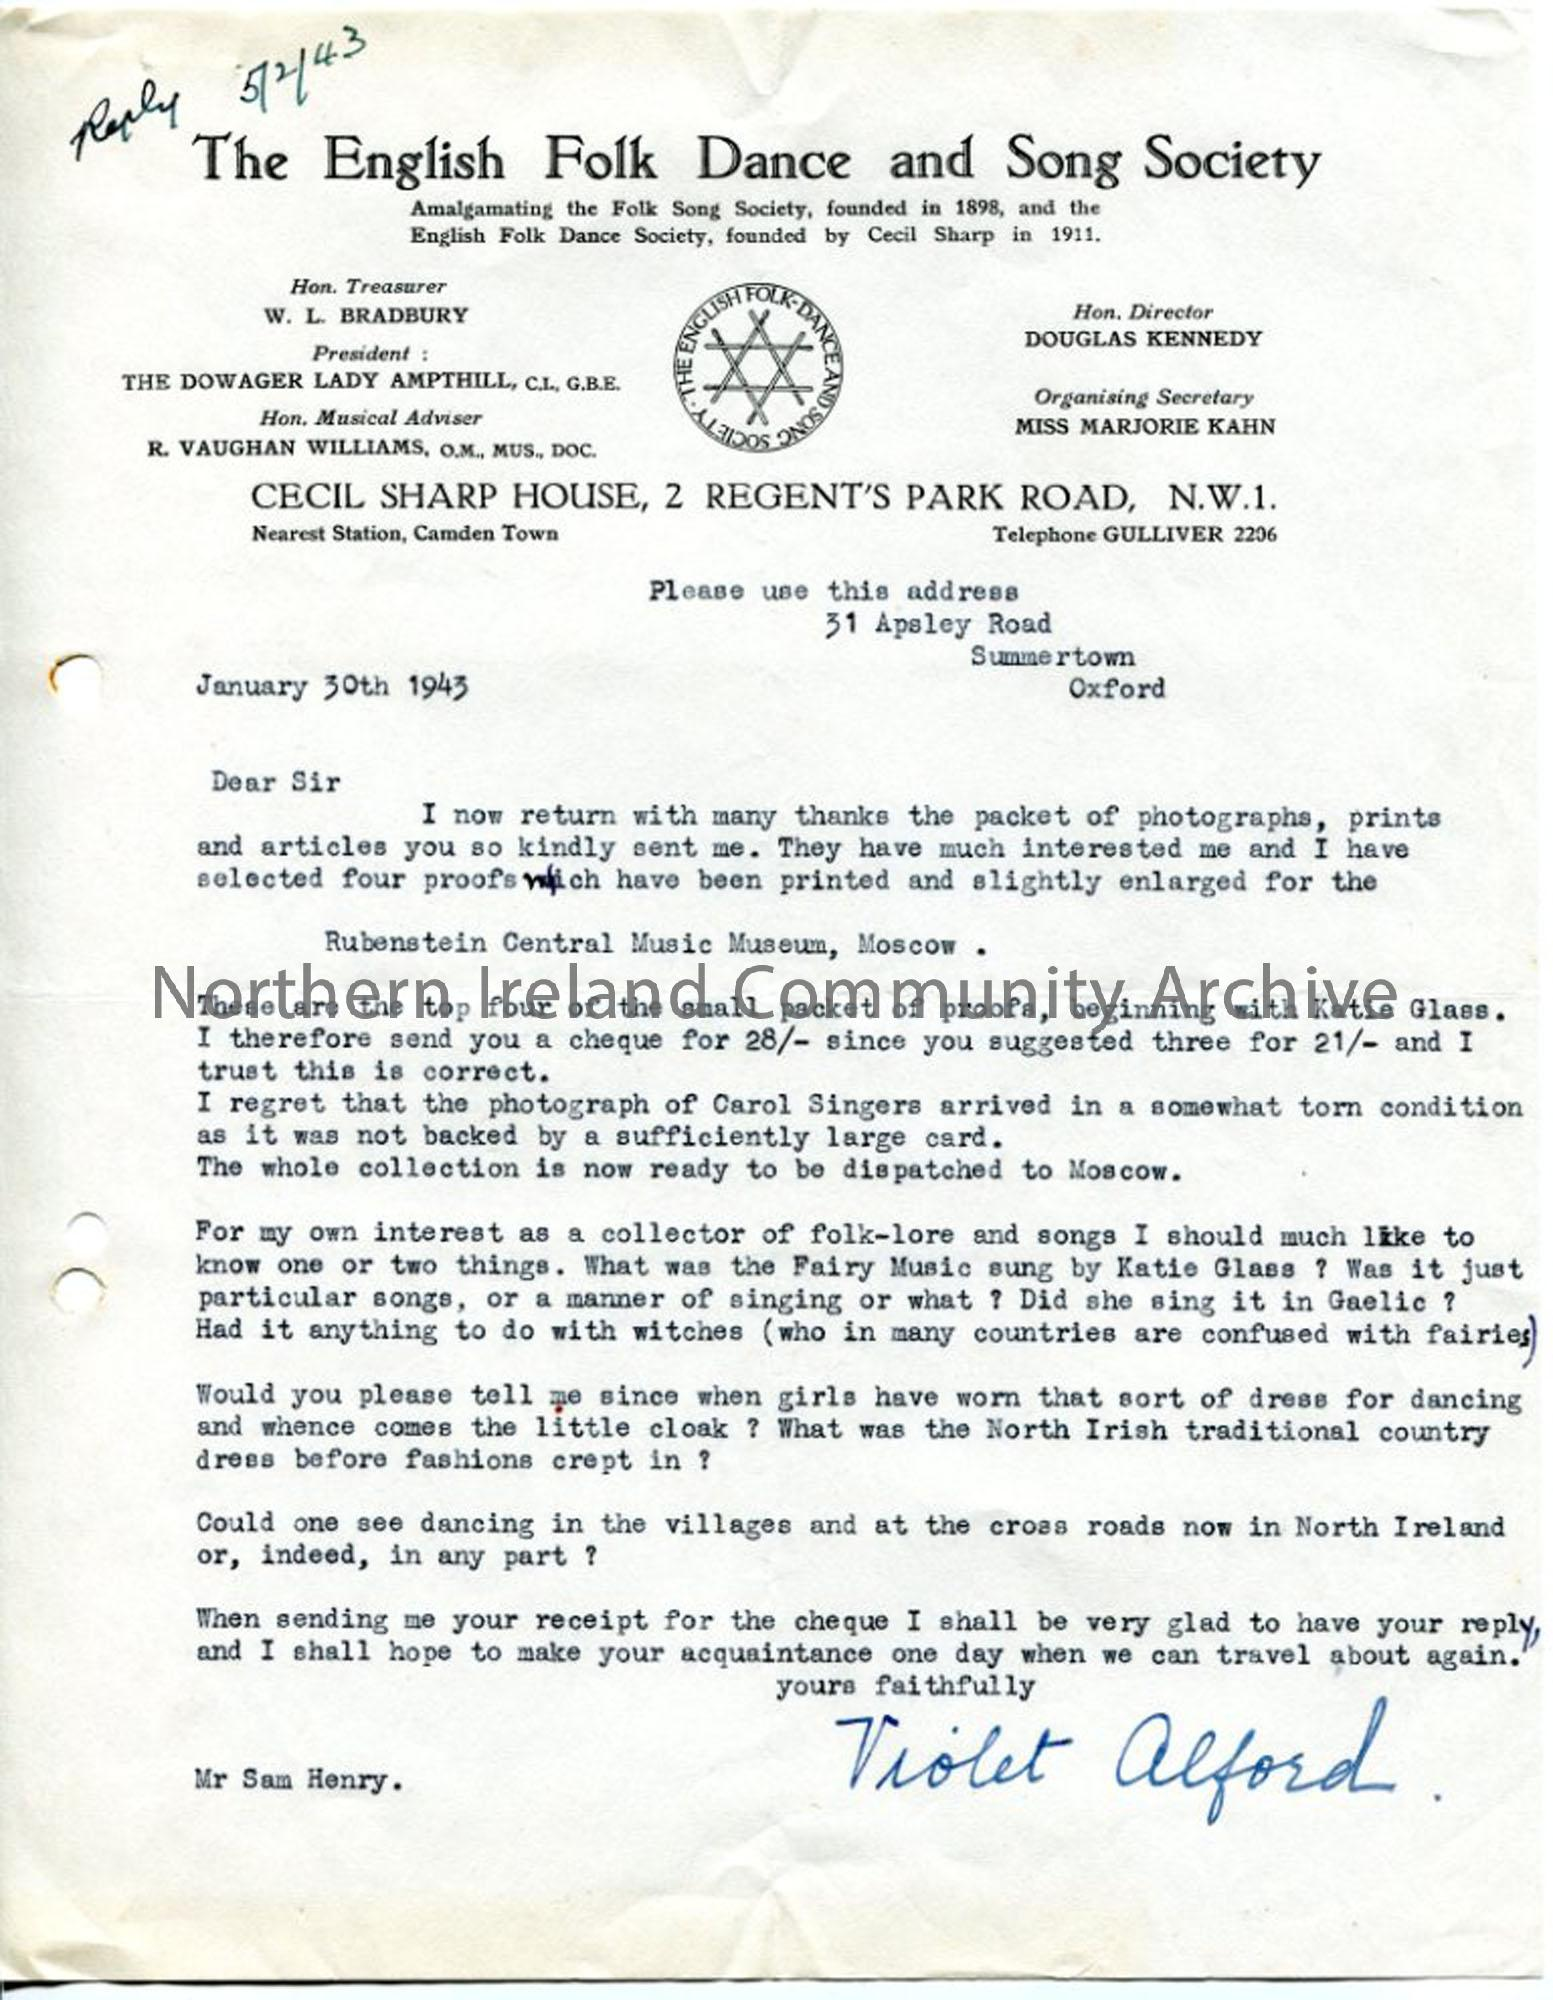 Letter from Violed Alford, 30.1.1943